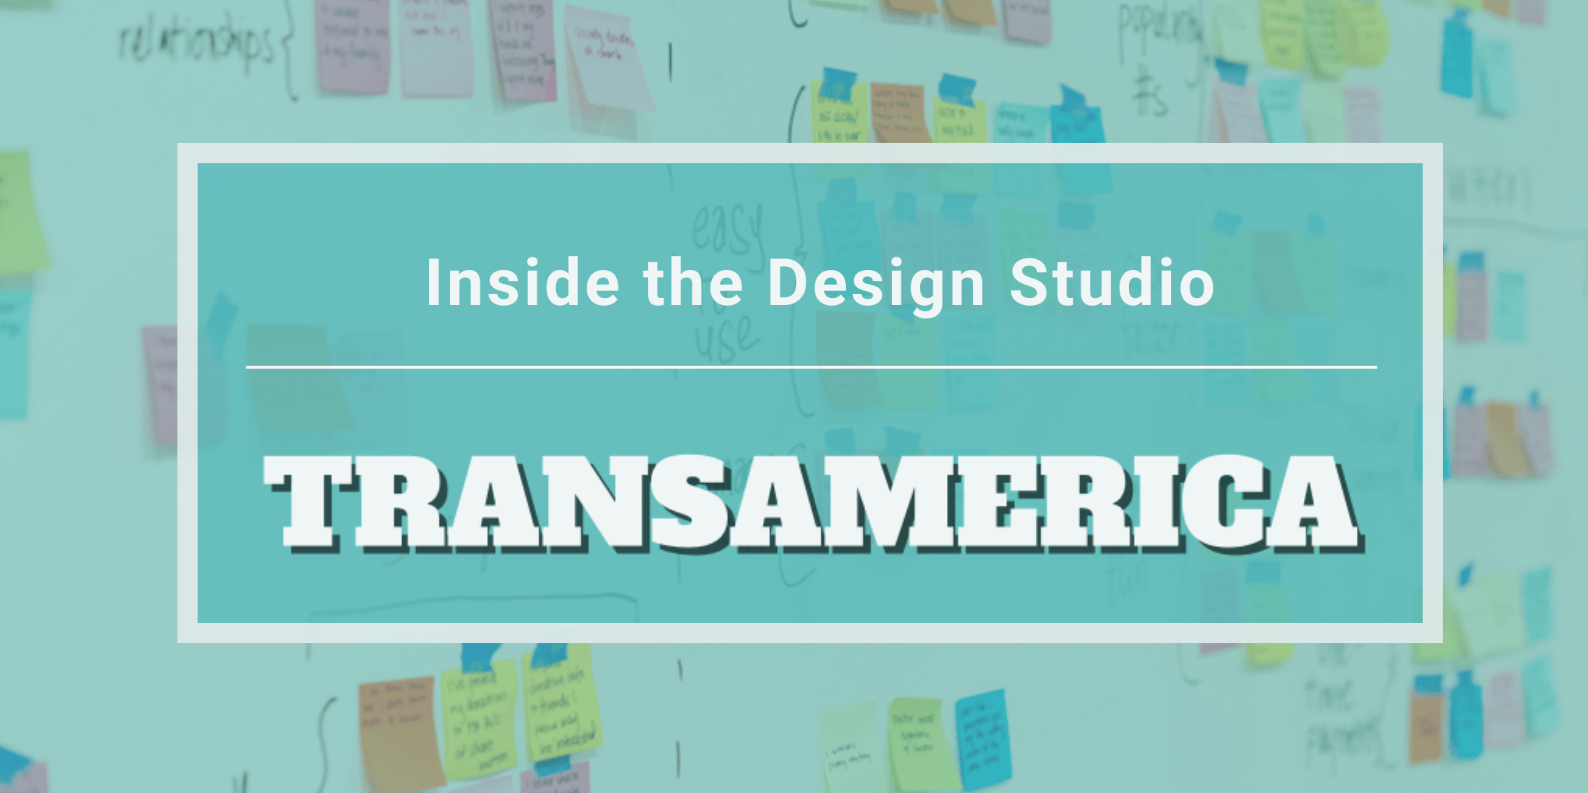 Inside the Design Studio: Transamerica